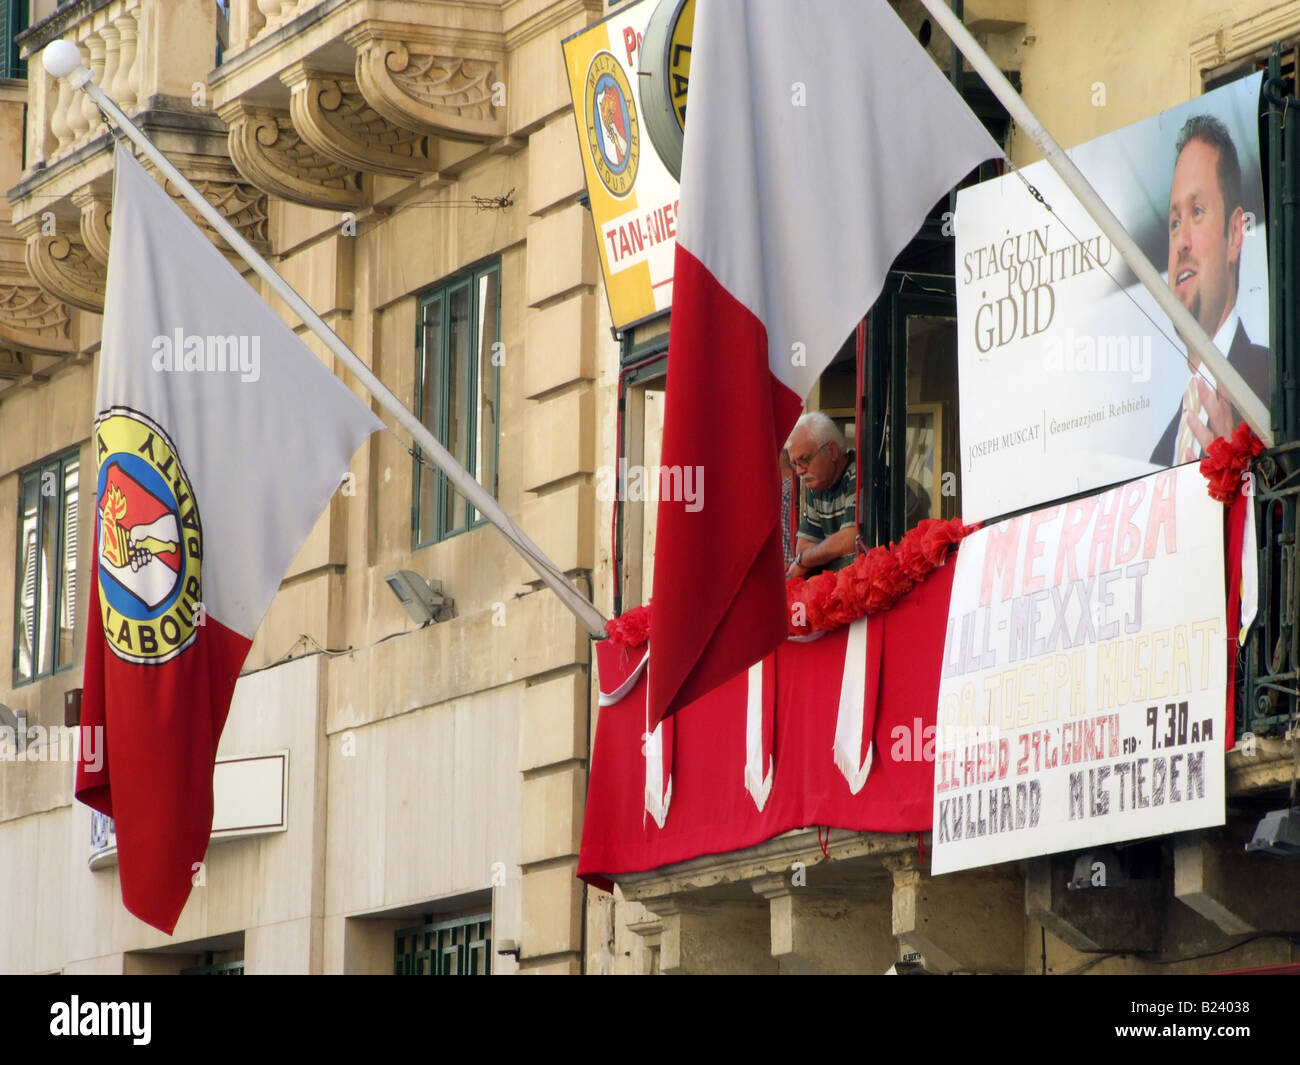 Flags and posters flanking the adorned balcony of the Maltese Labour Party premises in Valletta, Malta. - Stock Image